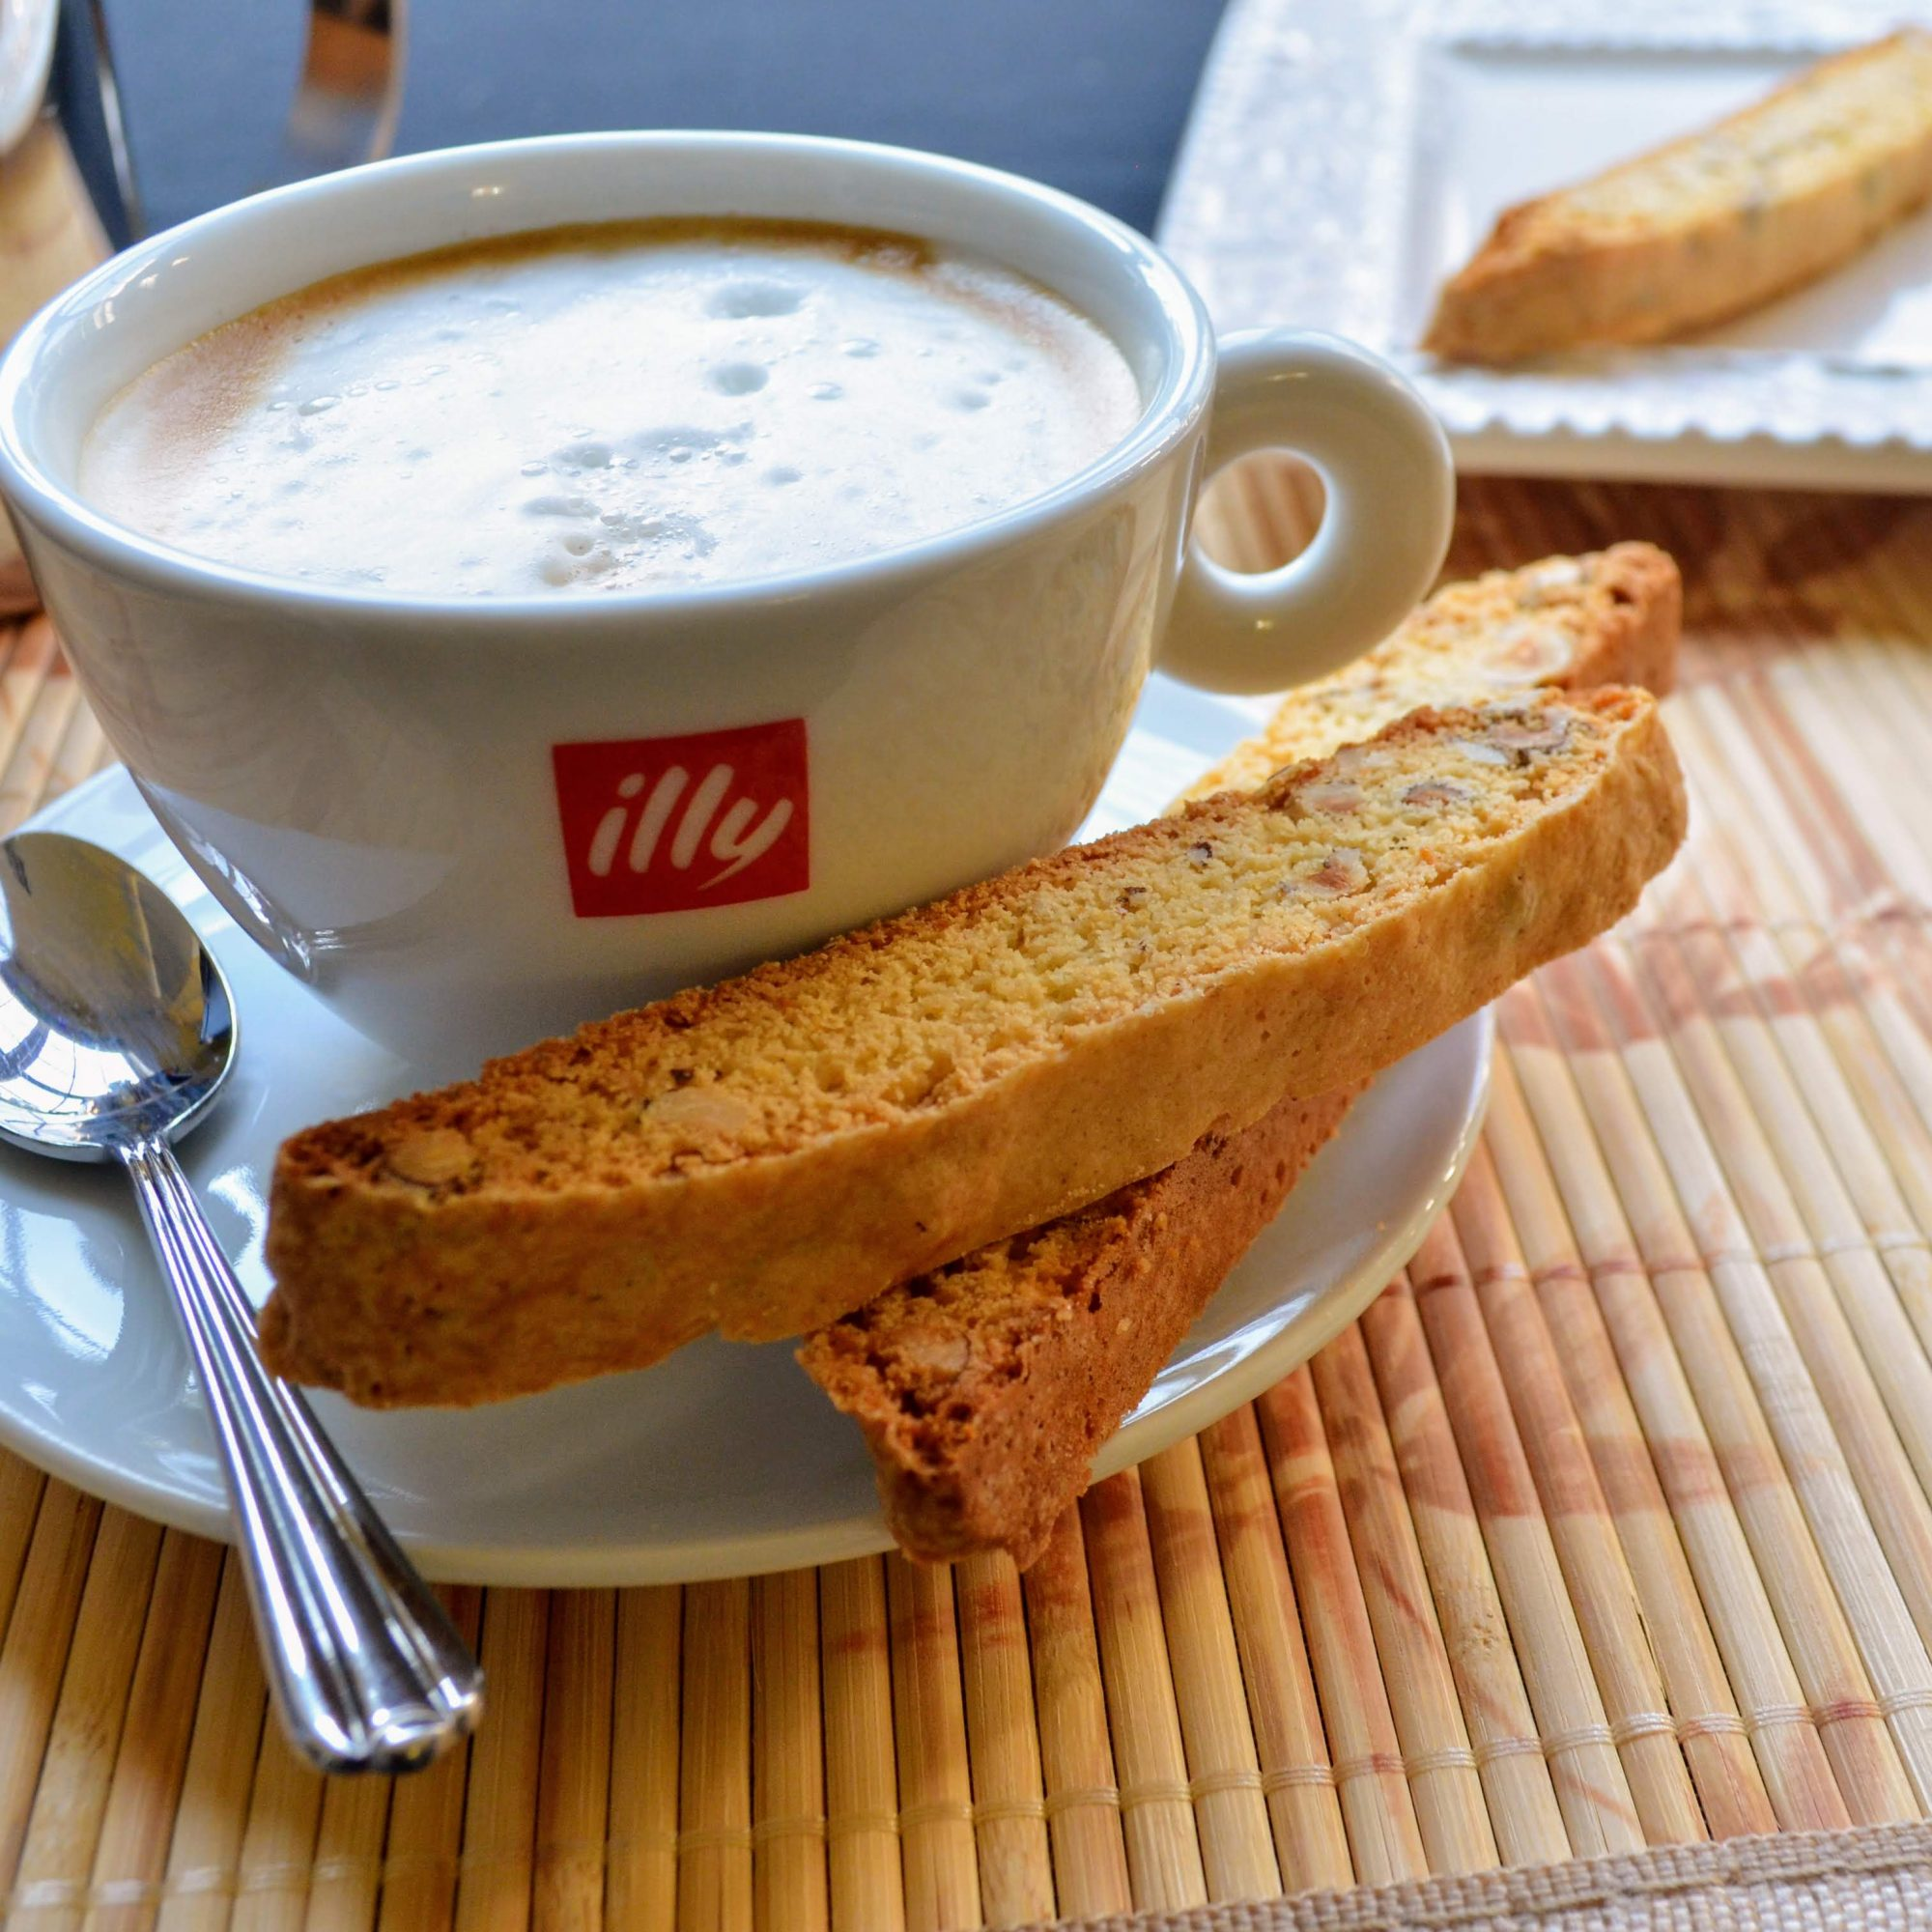 Chef John's Almond Biscotti with coffee on a white plate